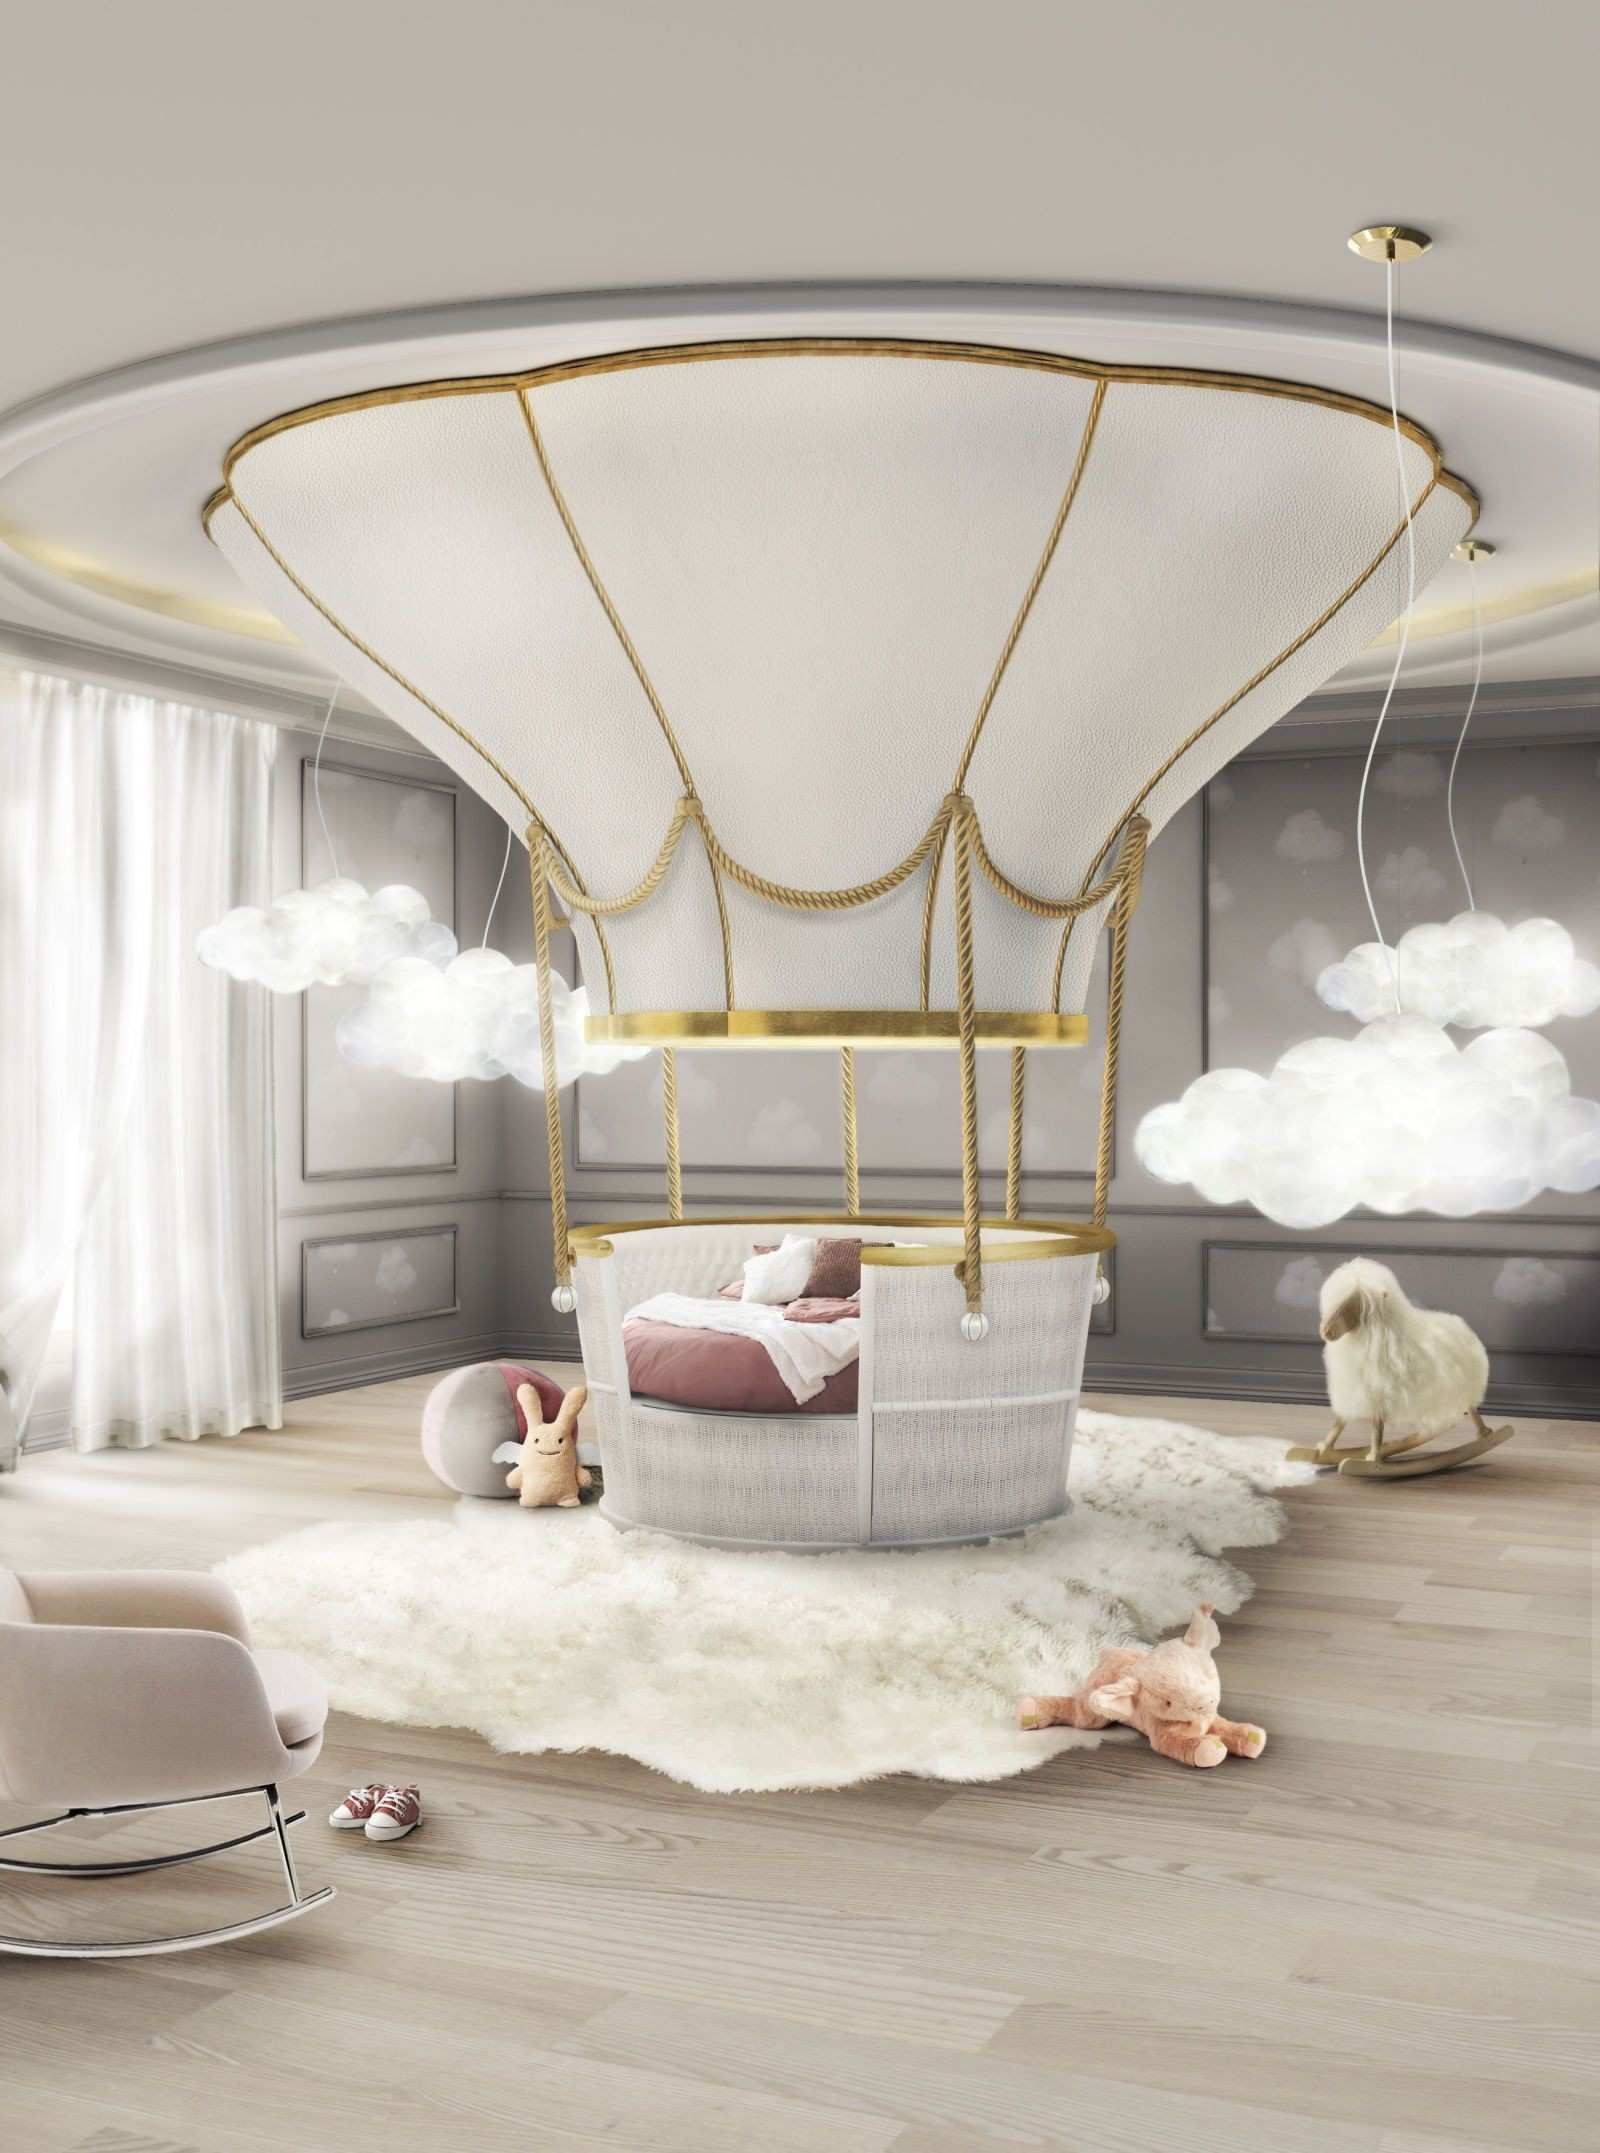 This Children s Bed Costs Just as Much as College Tuition